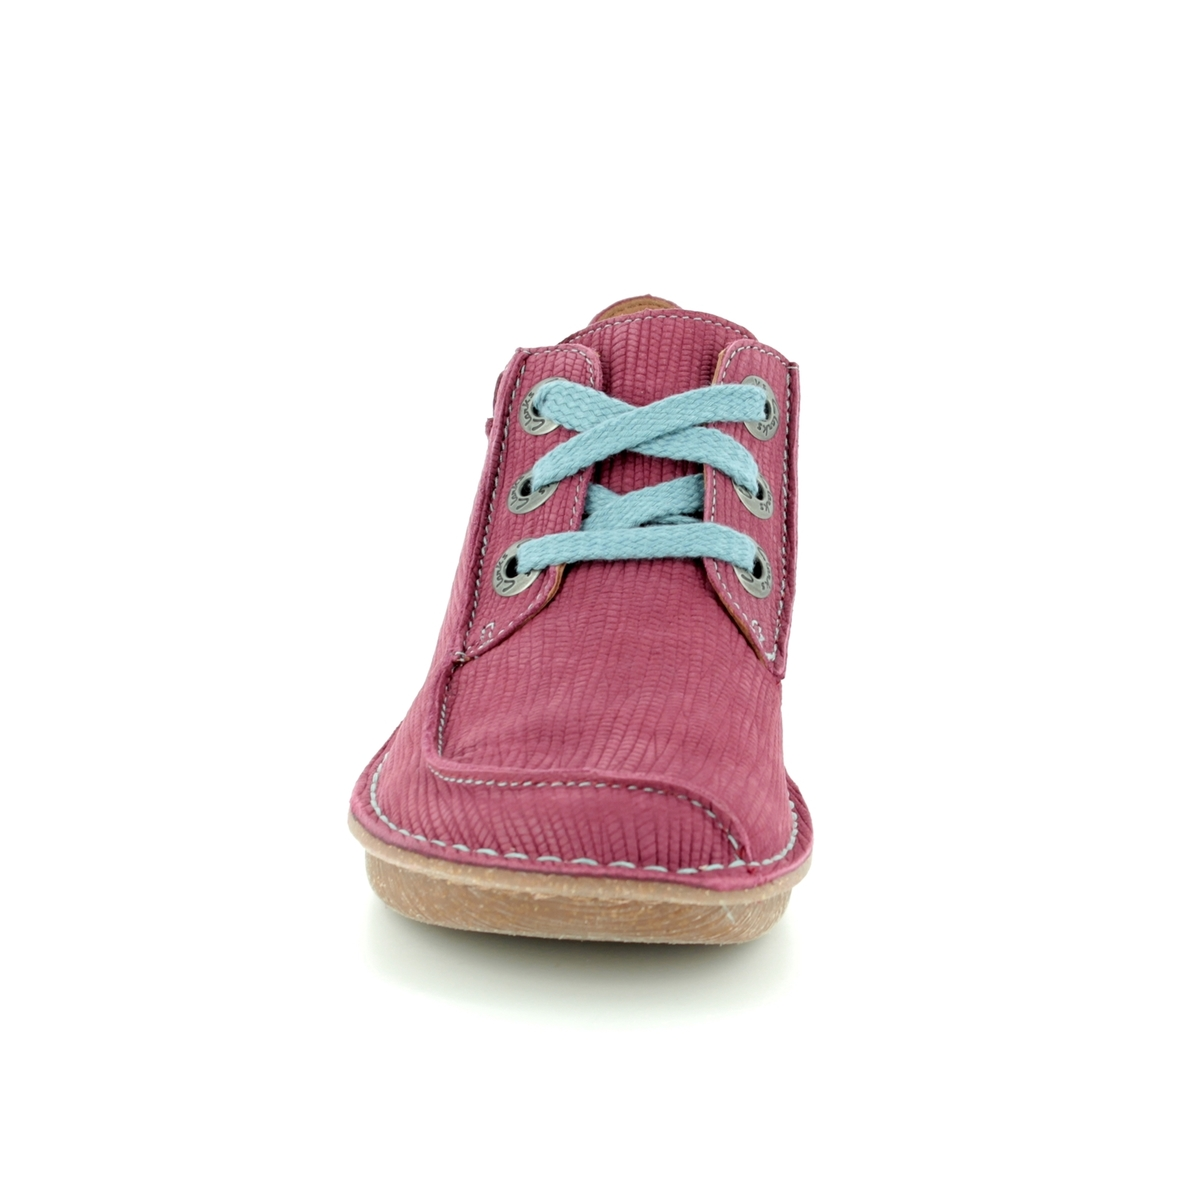 97380b38fa6a Clarks Lacing Shoes - Red - 3233 84D FUNNY DREAM